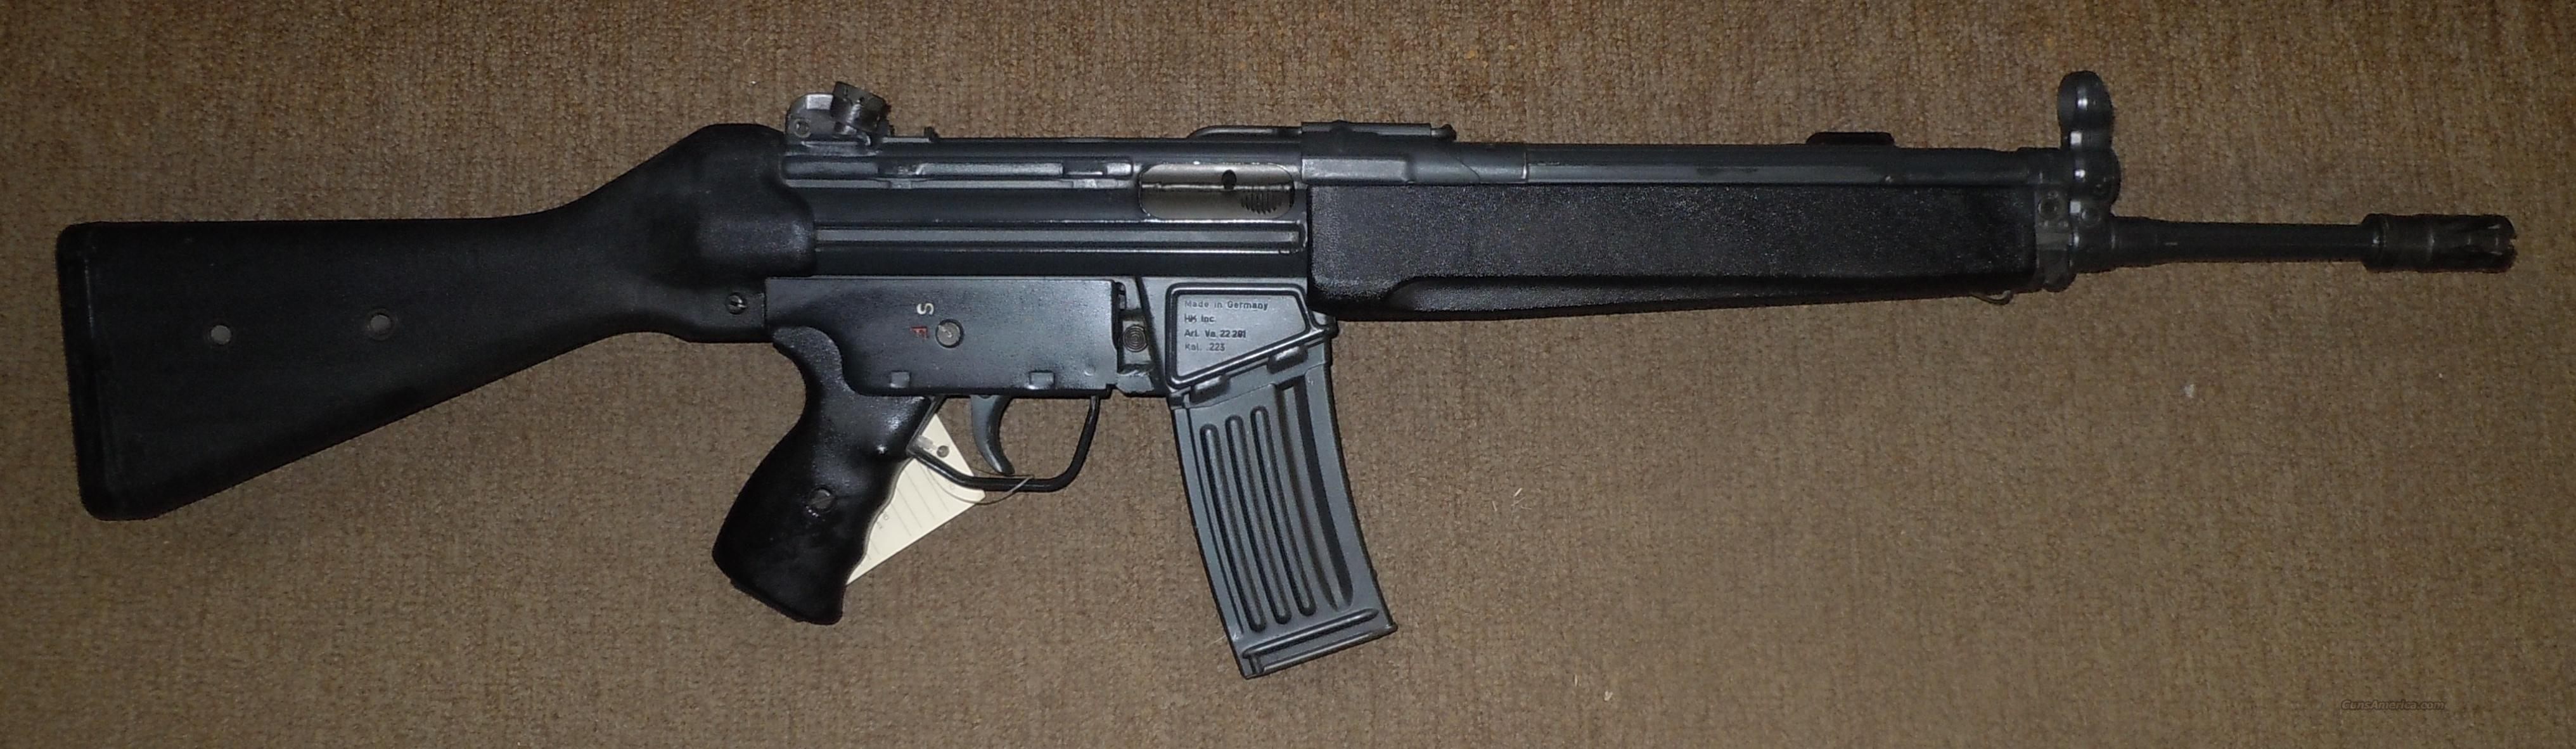 HECKLER & KOCH 93 223REM RIFLE W/ FIXED STOCK & CARRY HANDLE  Guns > Rifles > Heckler & Koch Rifles > Tactical